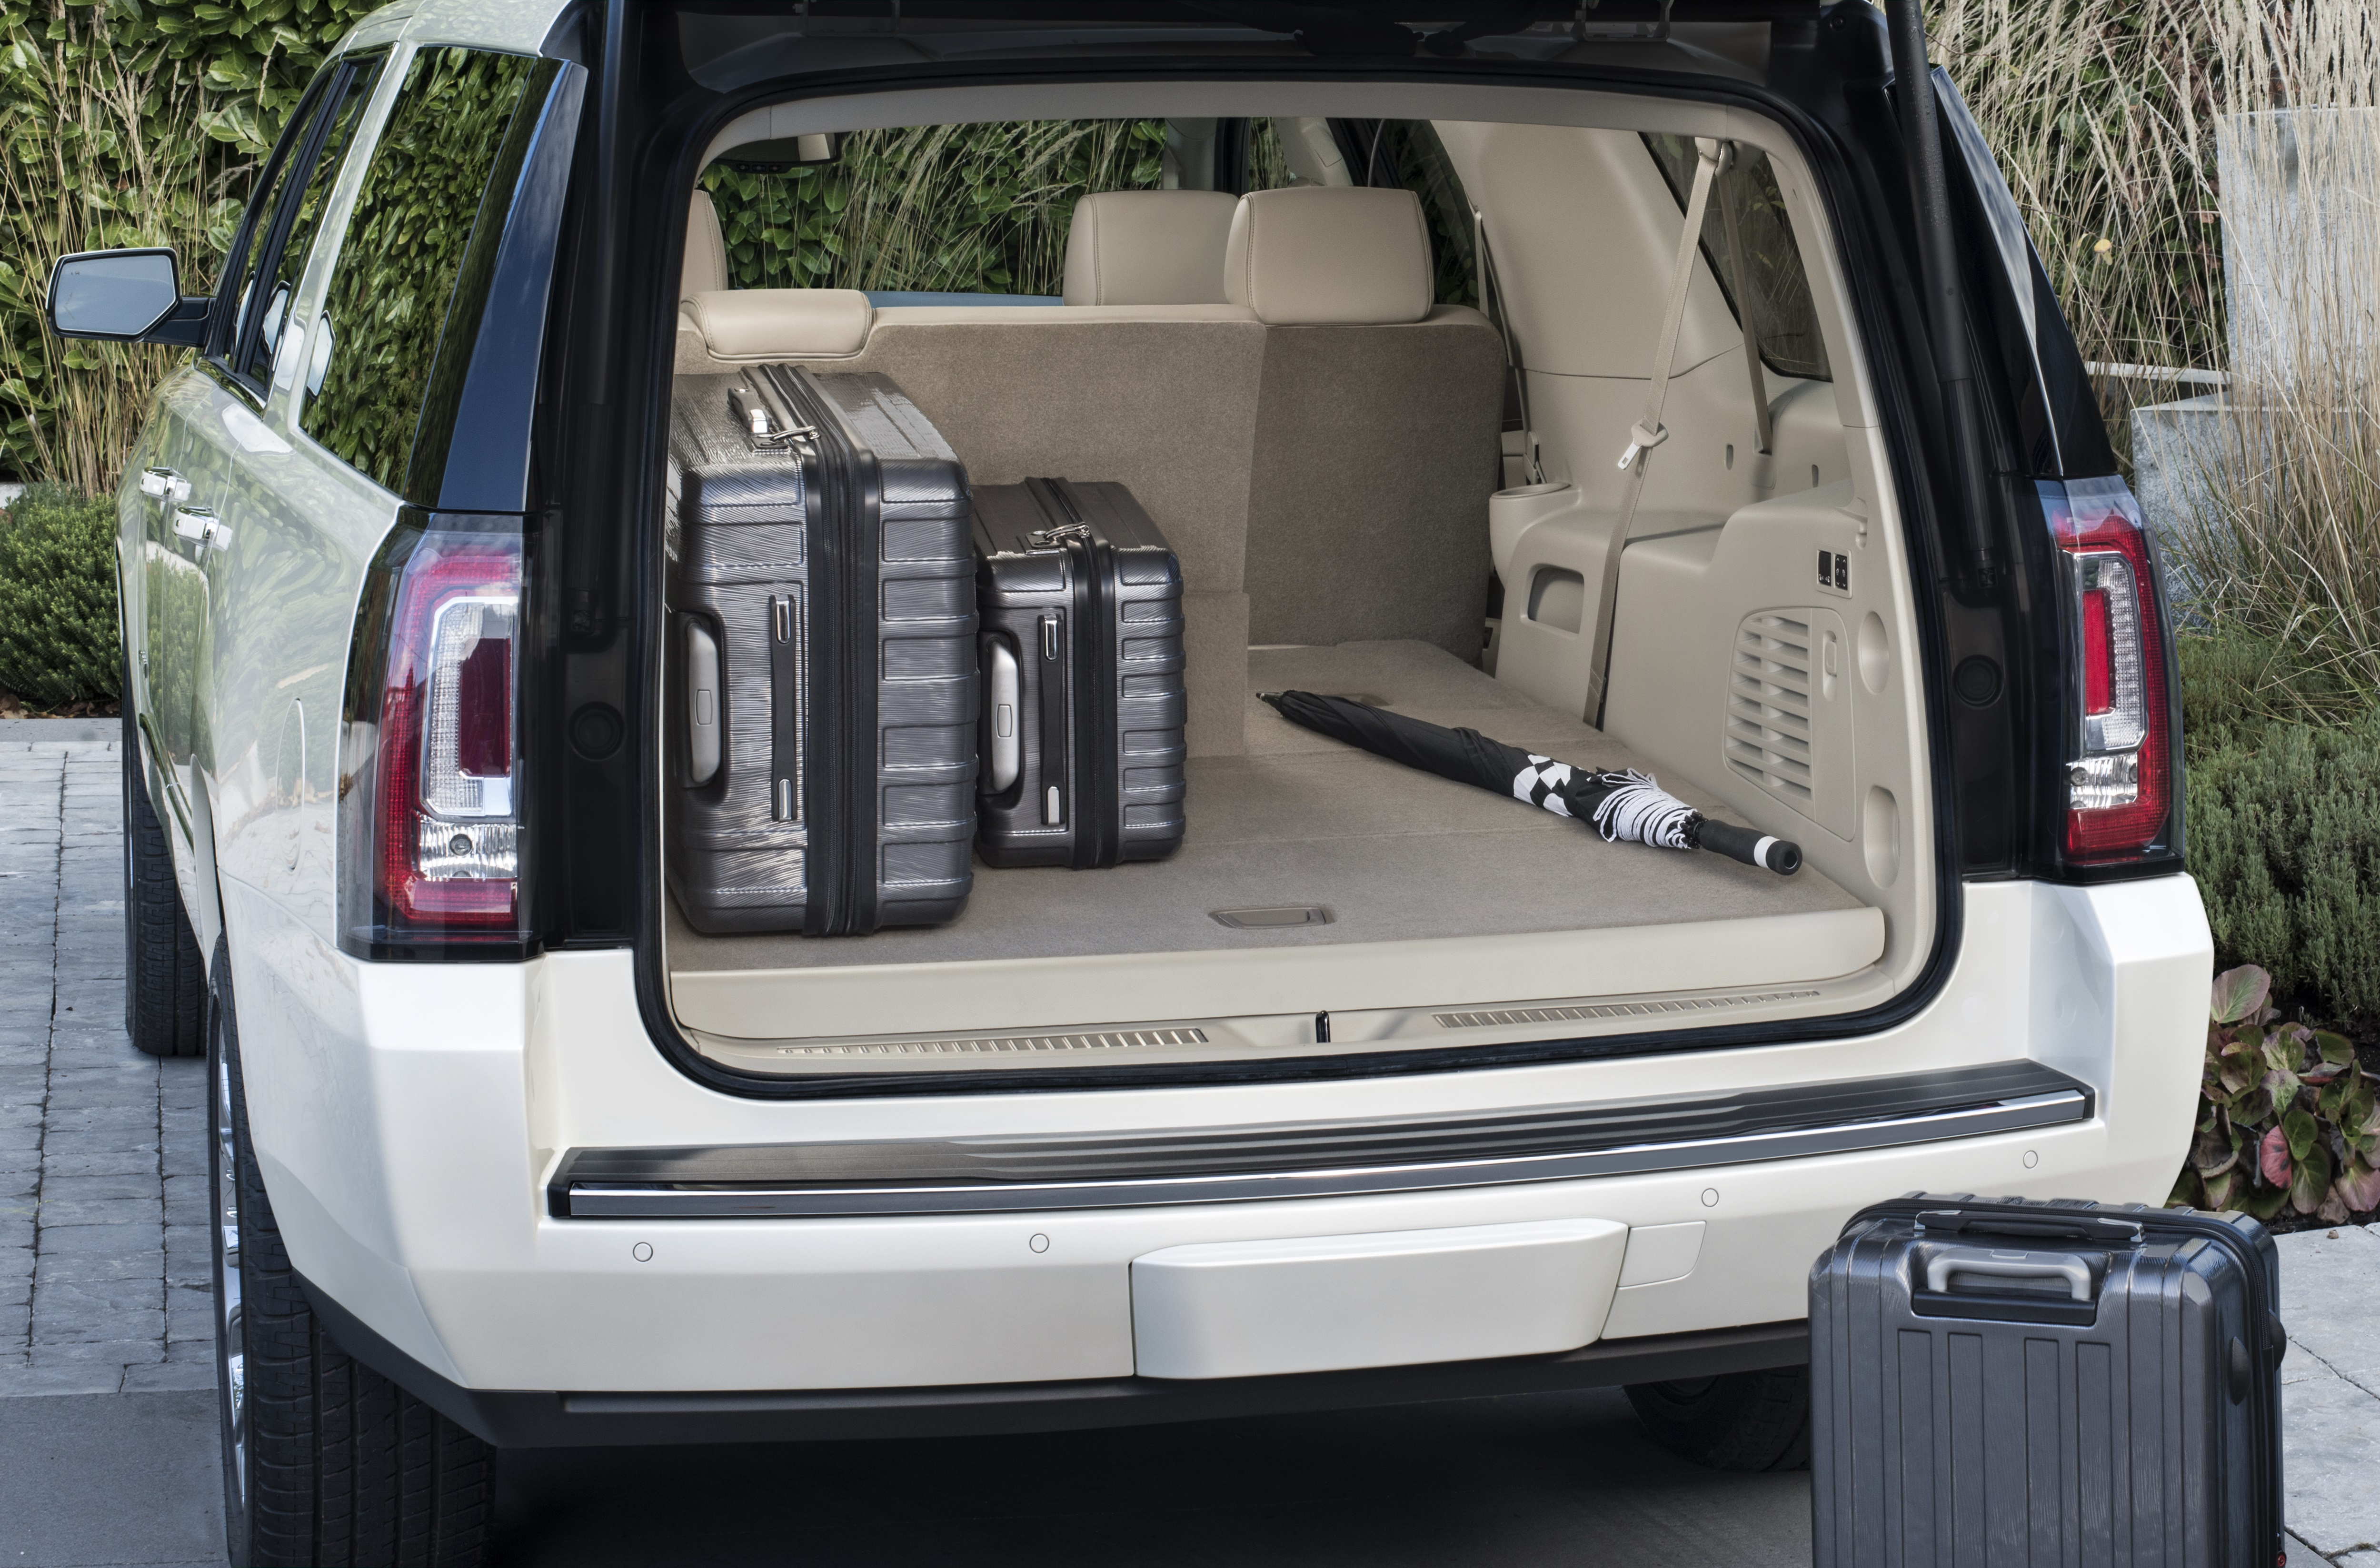 Six Reasons Why Gmc S 2019 Yukon Is The Ideal Family Friendly Vehicle